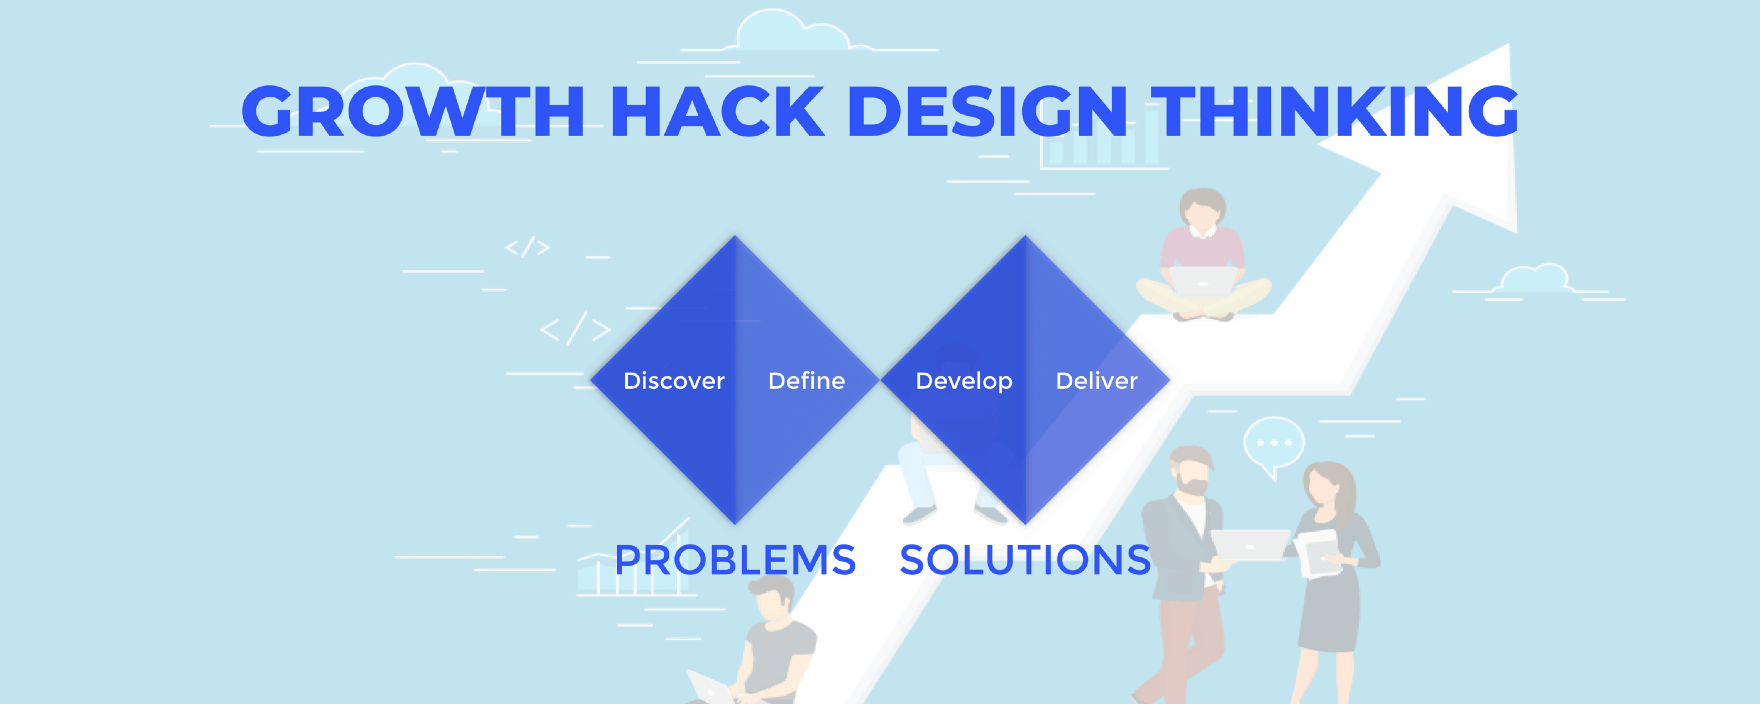 How to Growth Hack DesignThinking 1